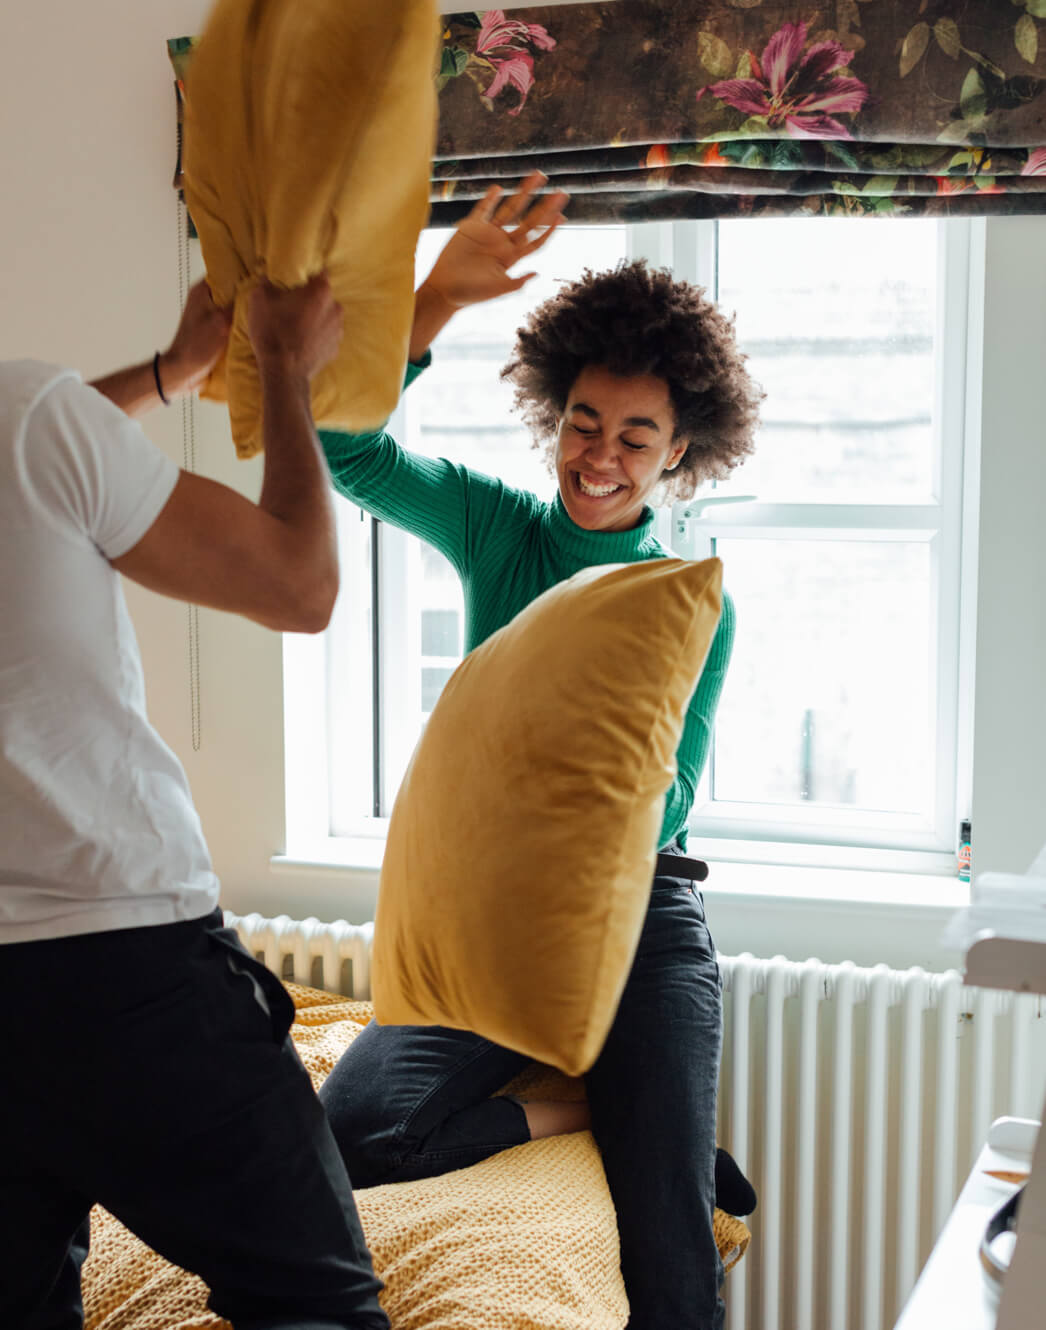 Couple having pillow fight with laugh.